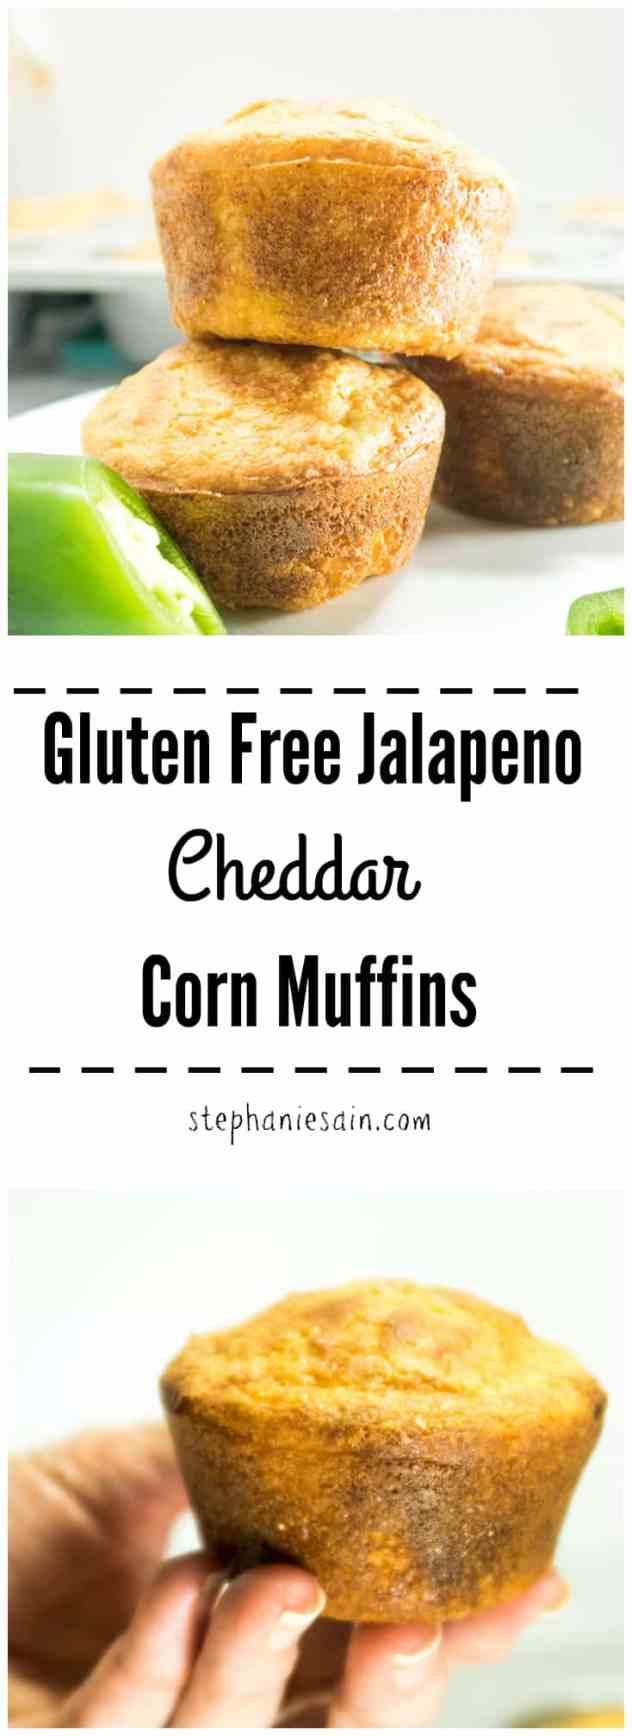 Gluten Free Jalapeno Cheddar Corn Muffins are a great addition with soups, stews, & chili. Also make a perfect snack that packs well for lunches.